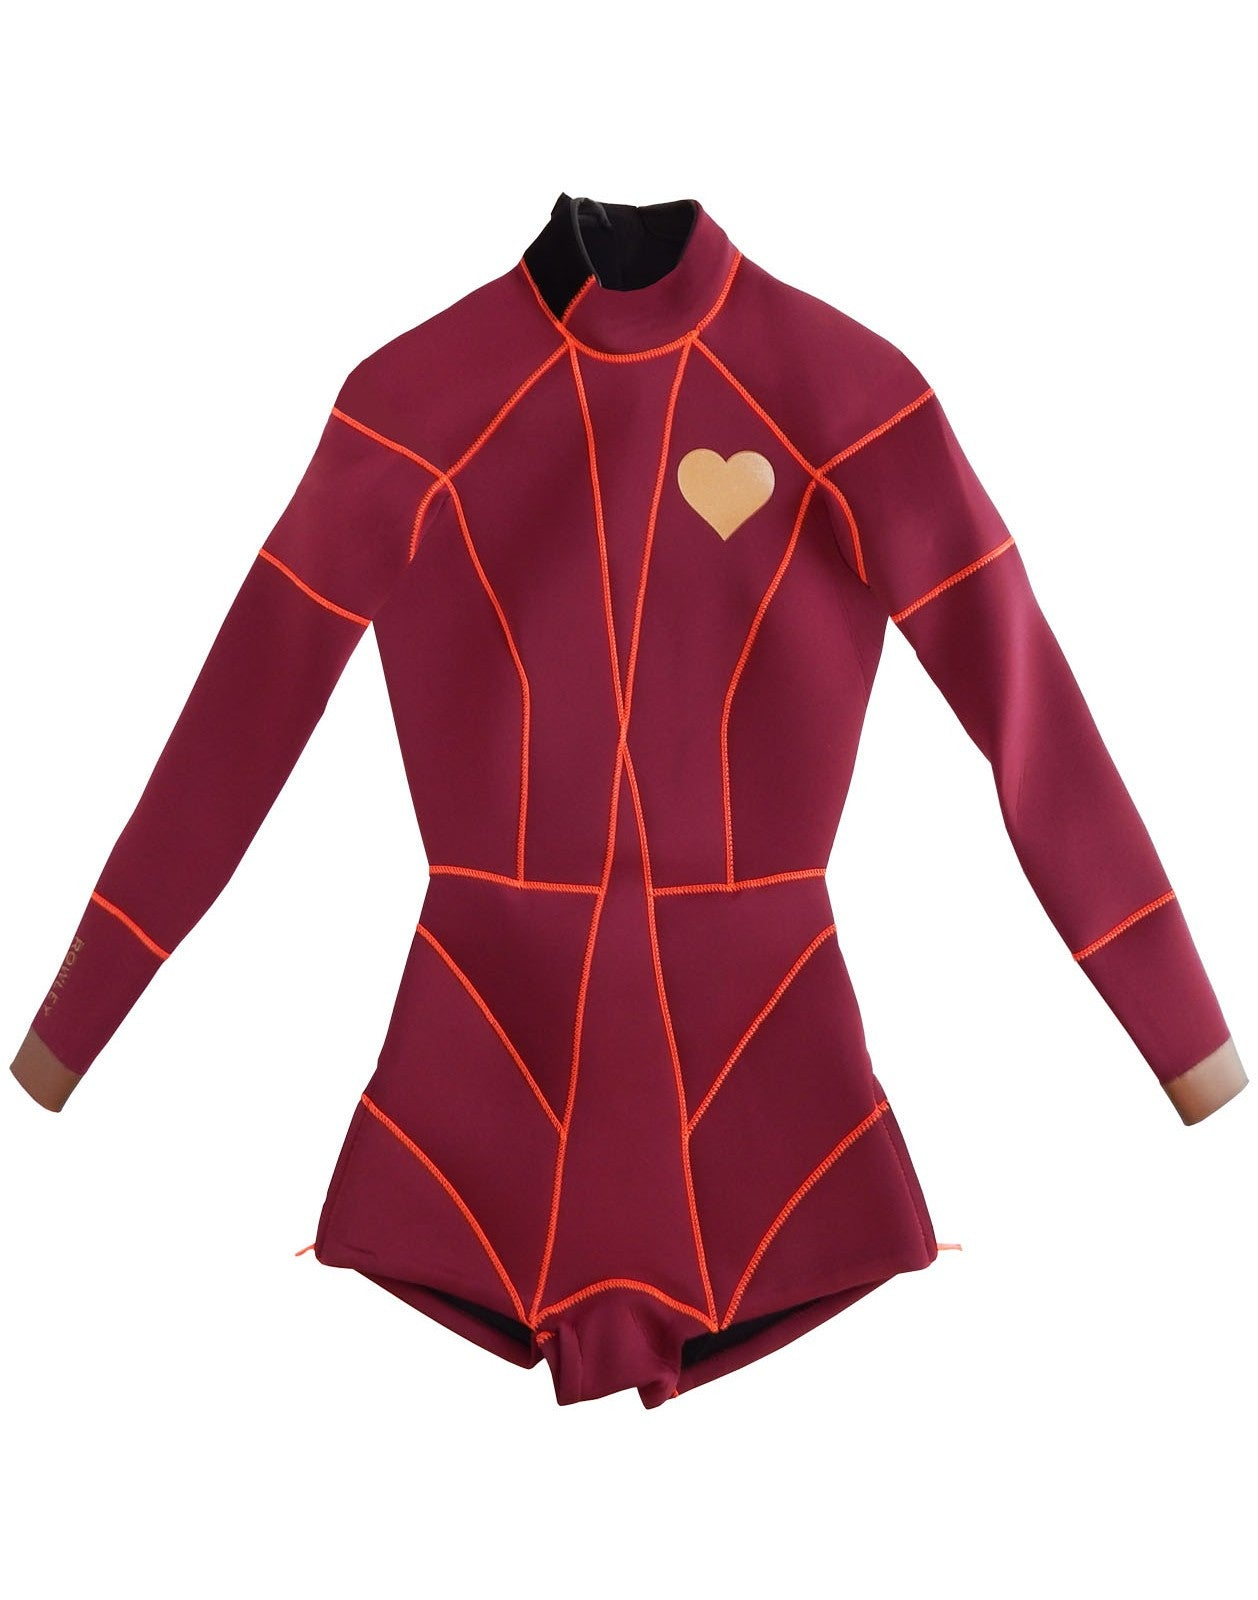 Flat image iof the Heart Emblem Wetsuit 2MM Fiber-Lite Neoprene with heart emblem detail on chest.